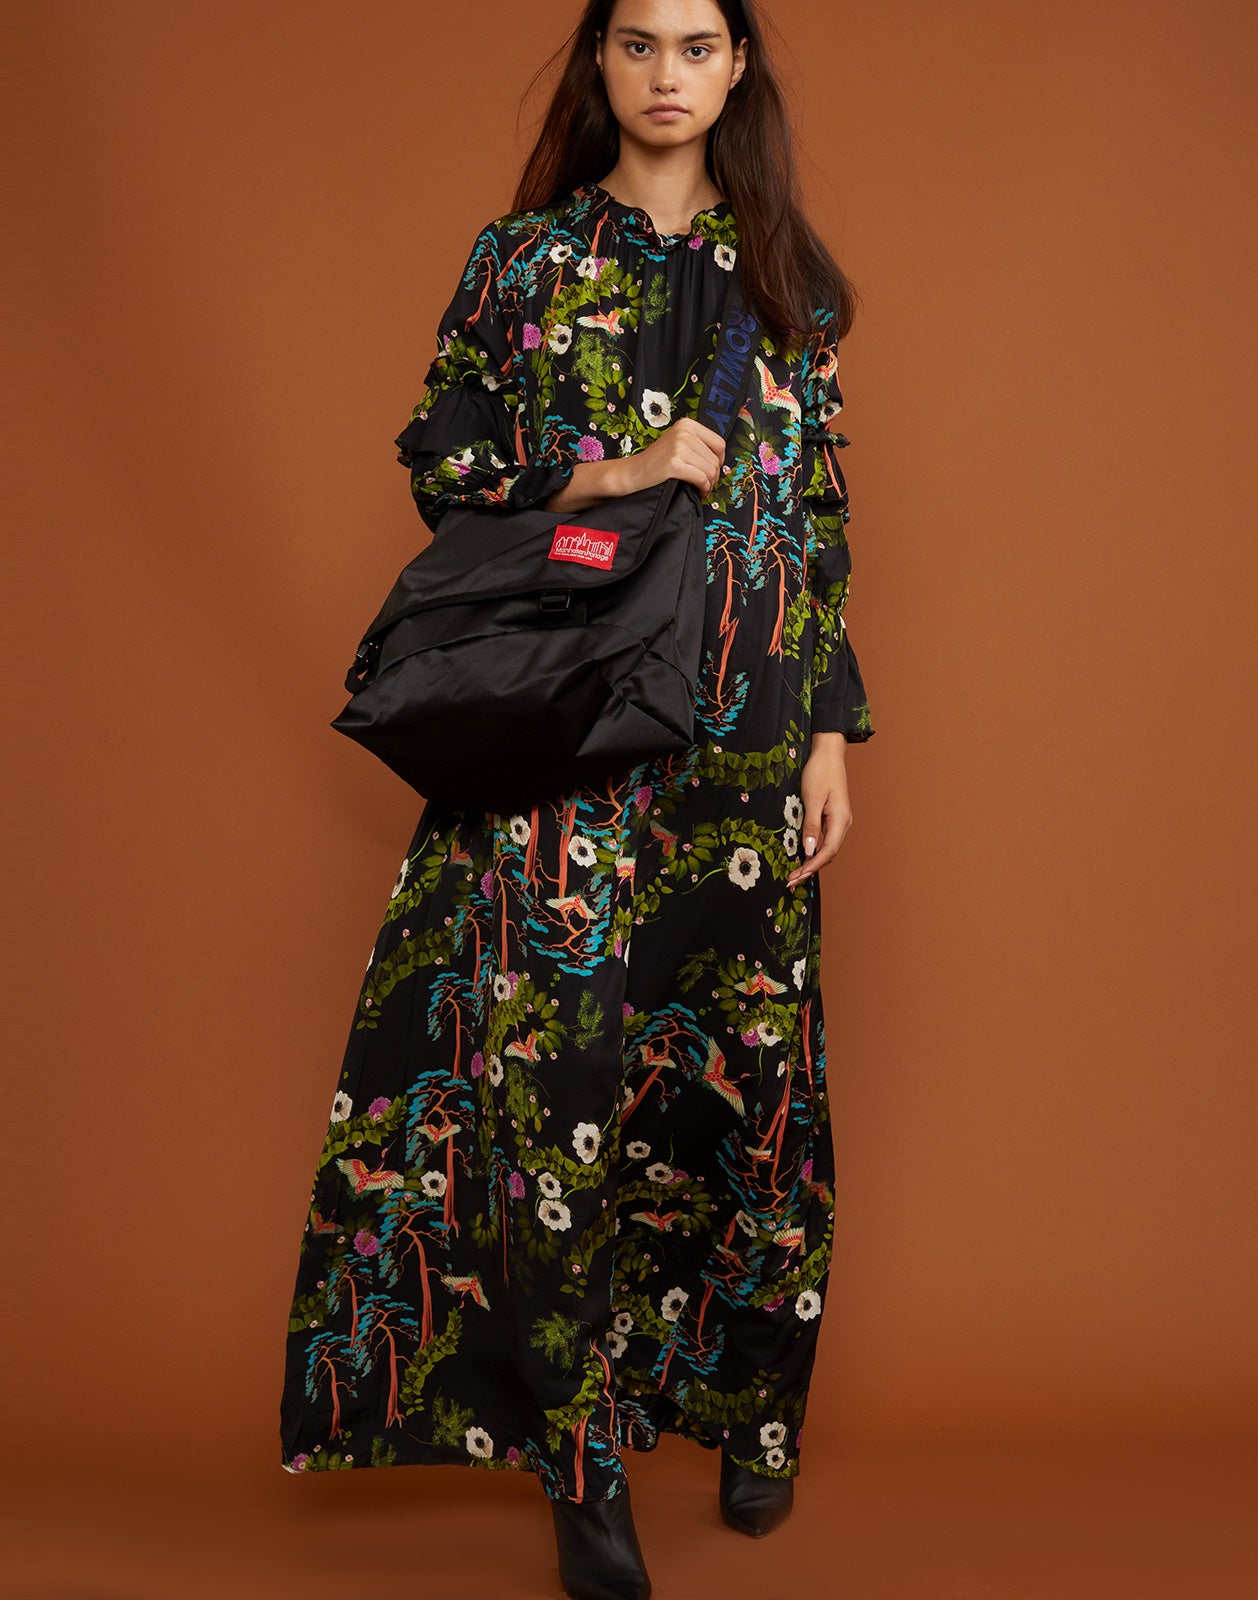 Front view of model wearing the Allegra maxi dress and carrying the large black satin Rowley x Manhattan messenger bag.